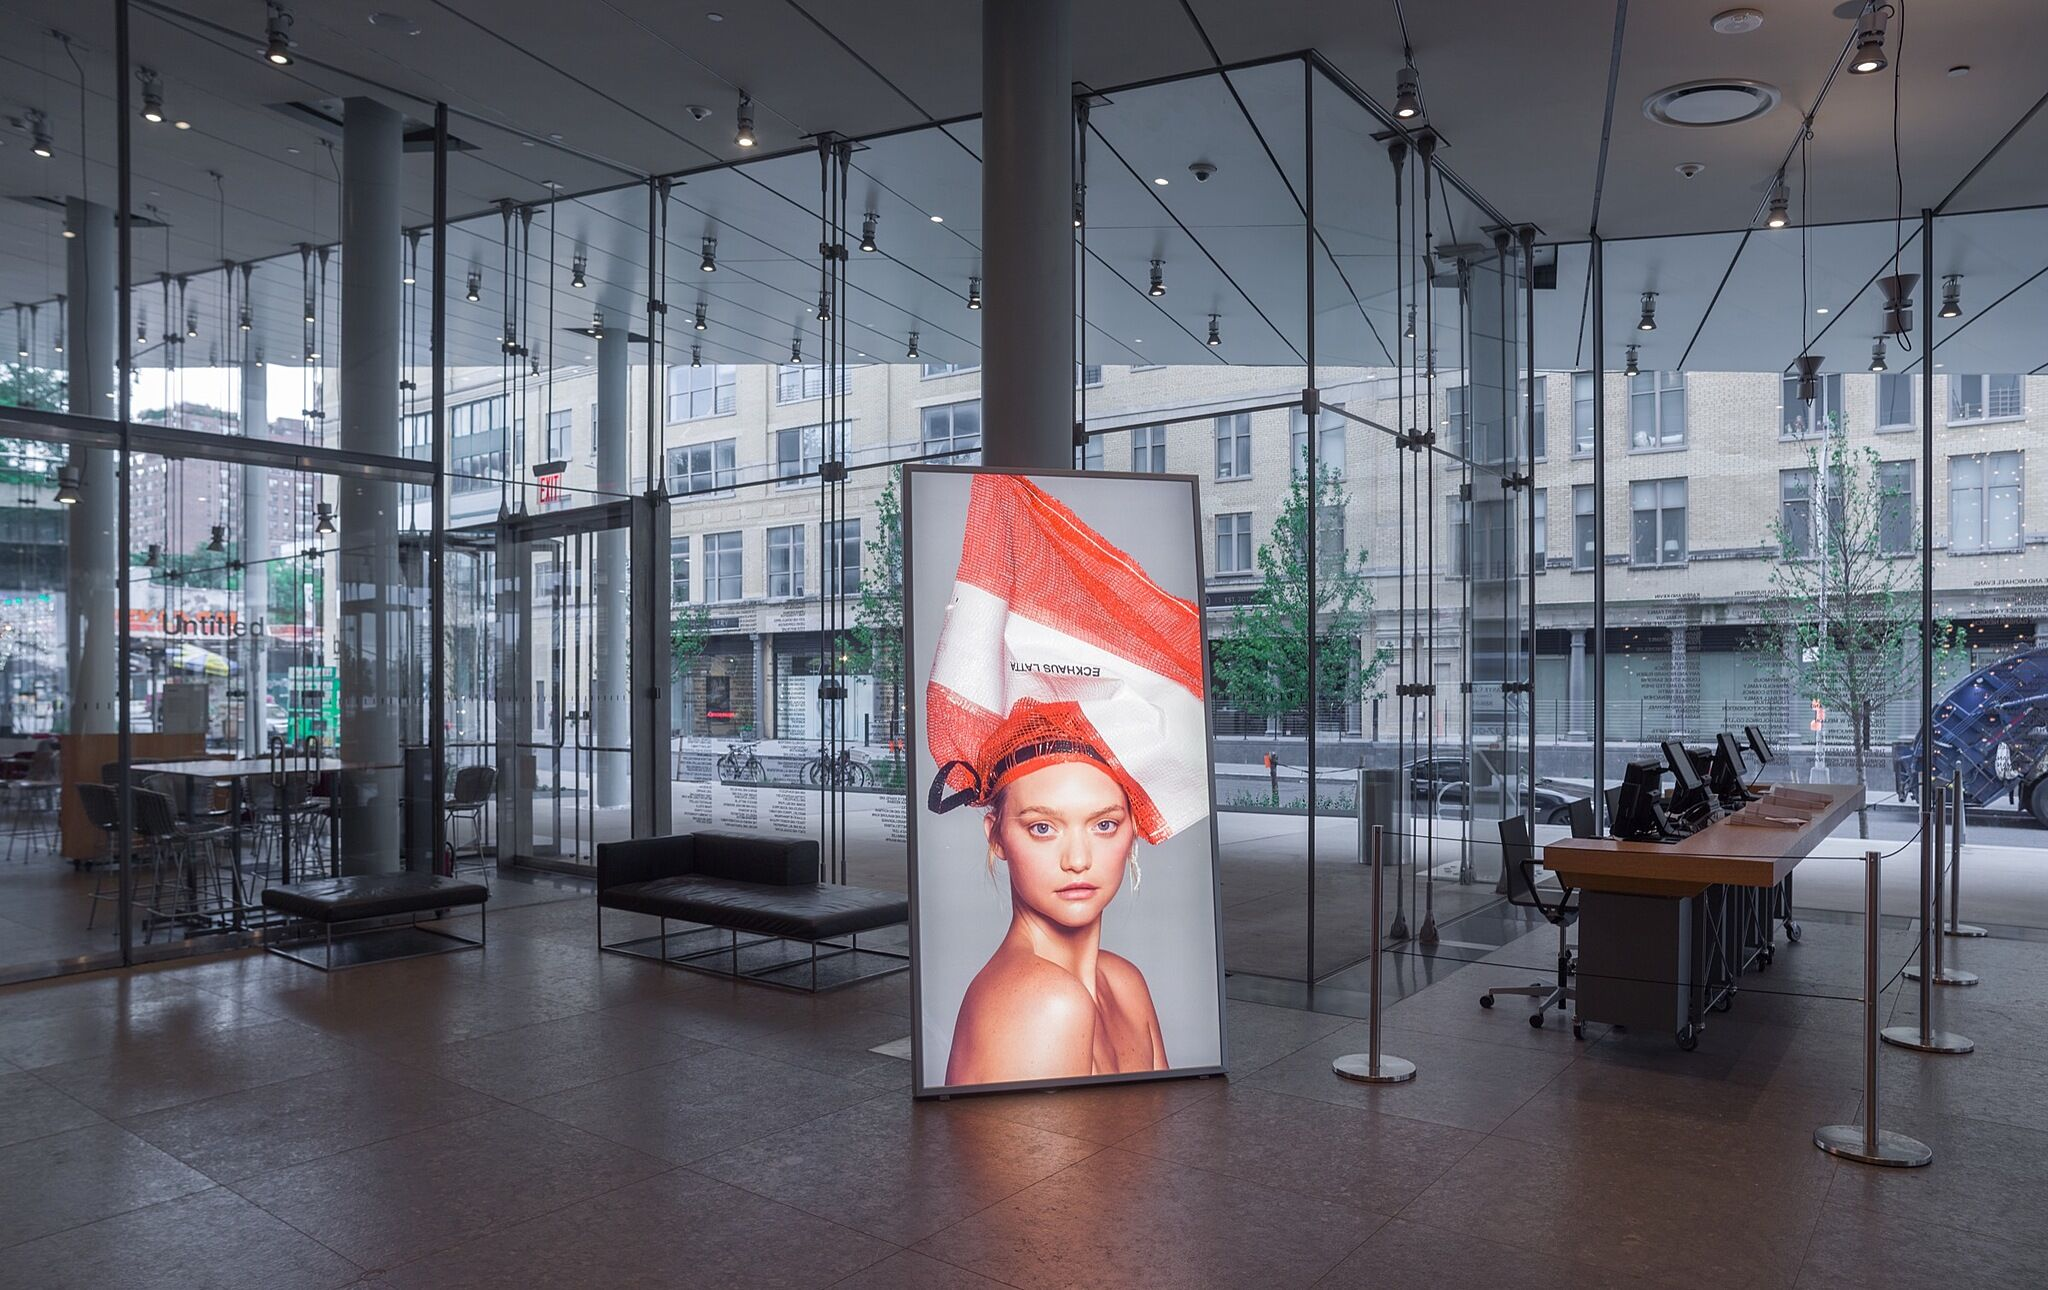 A lightbox photo of a blond model wearing a bag on their head in the Whitney lobby.